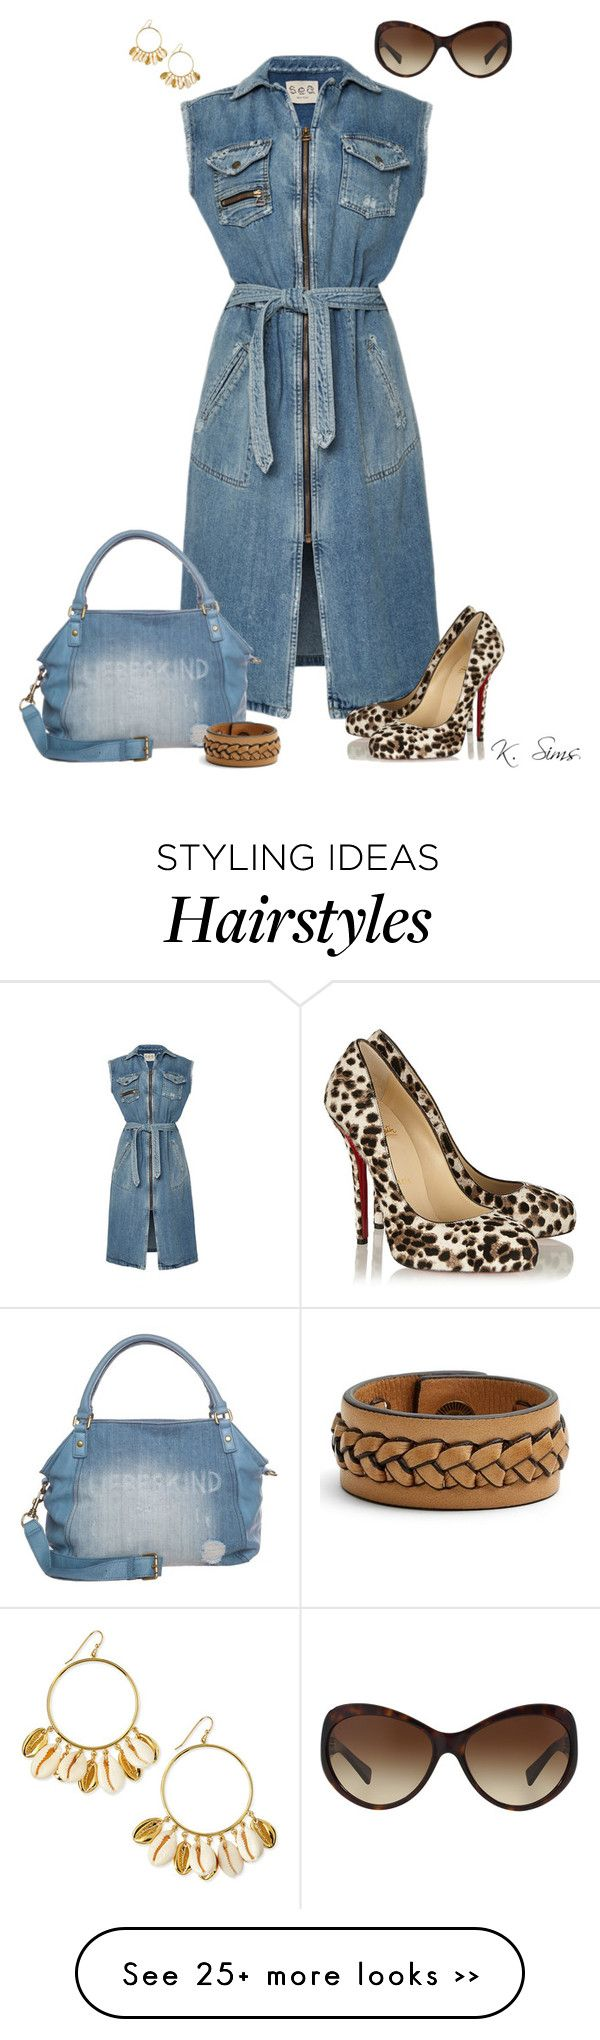 """Double Denim"" by ksims-1 on Polyvore"